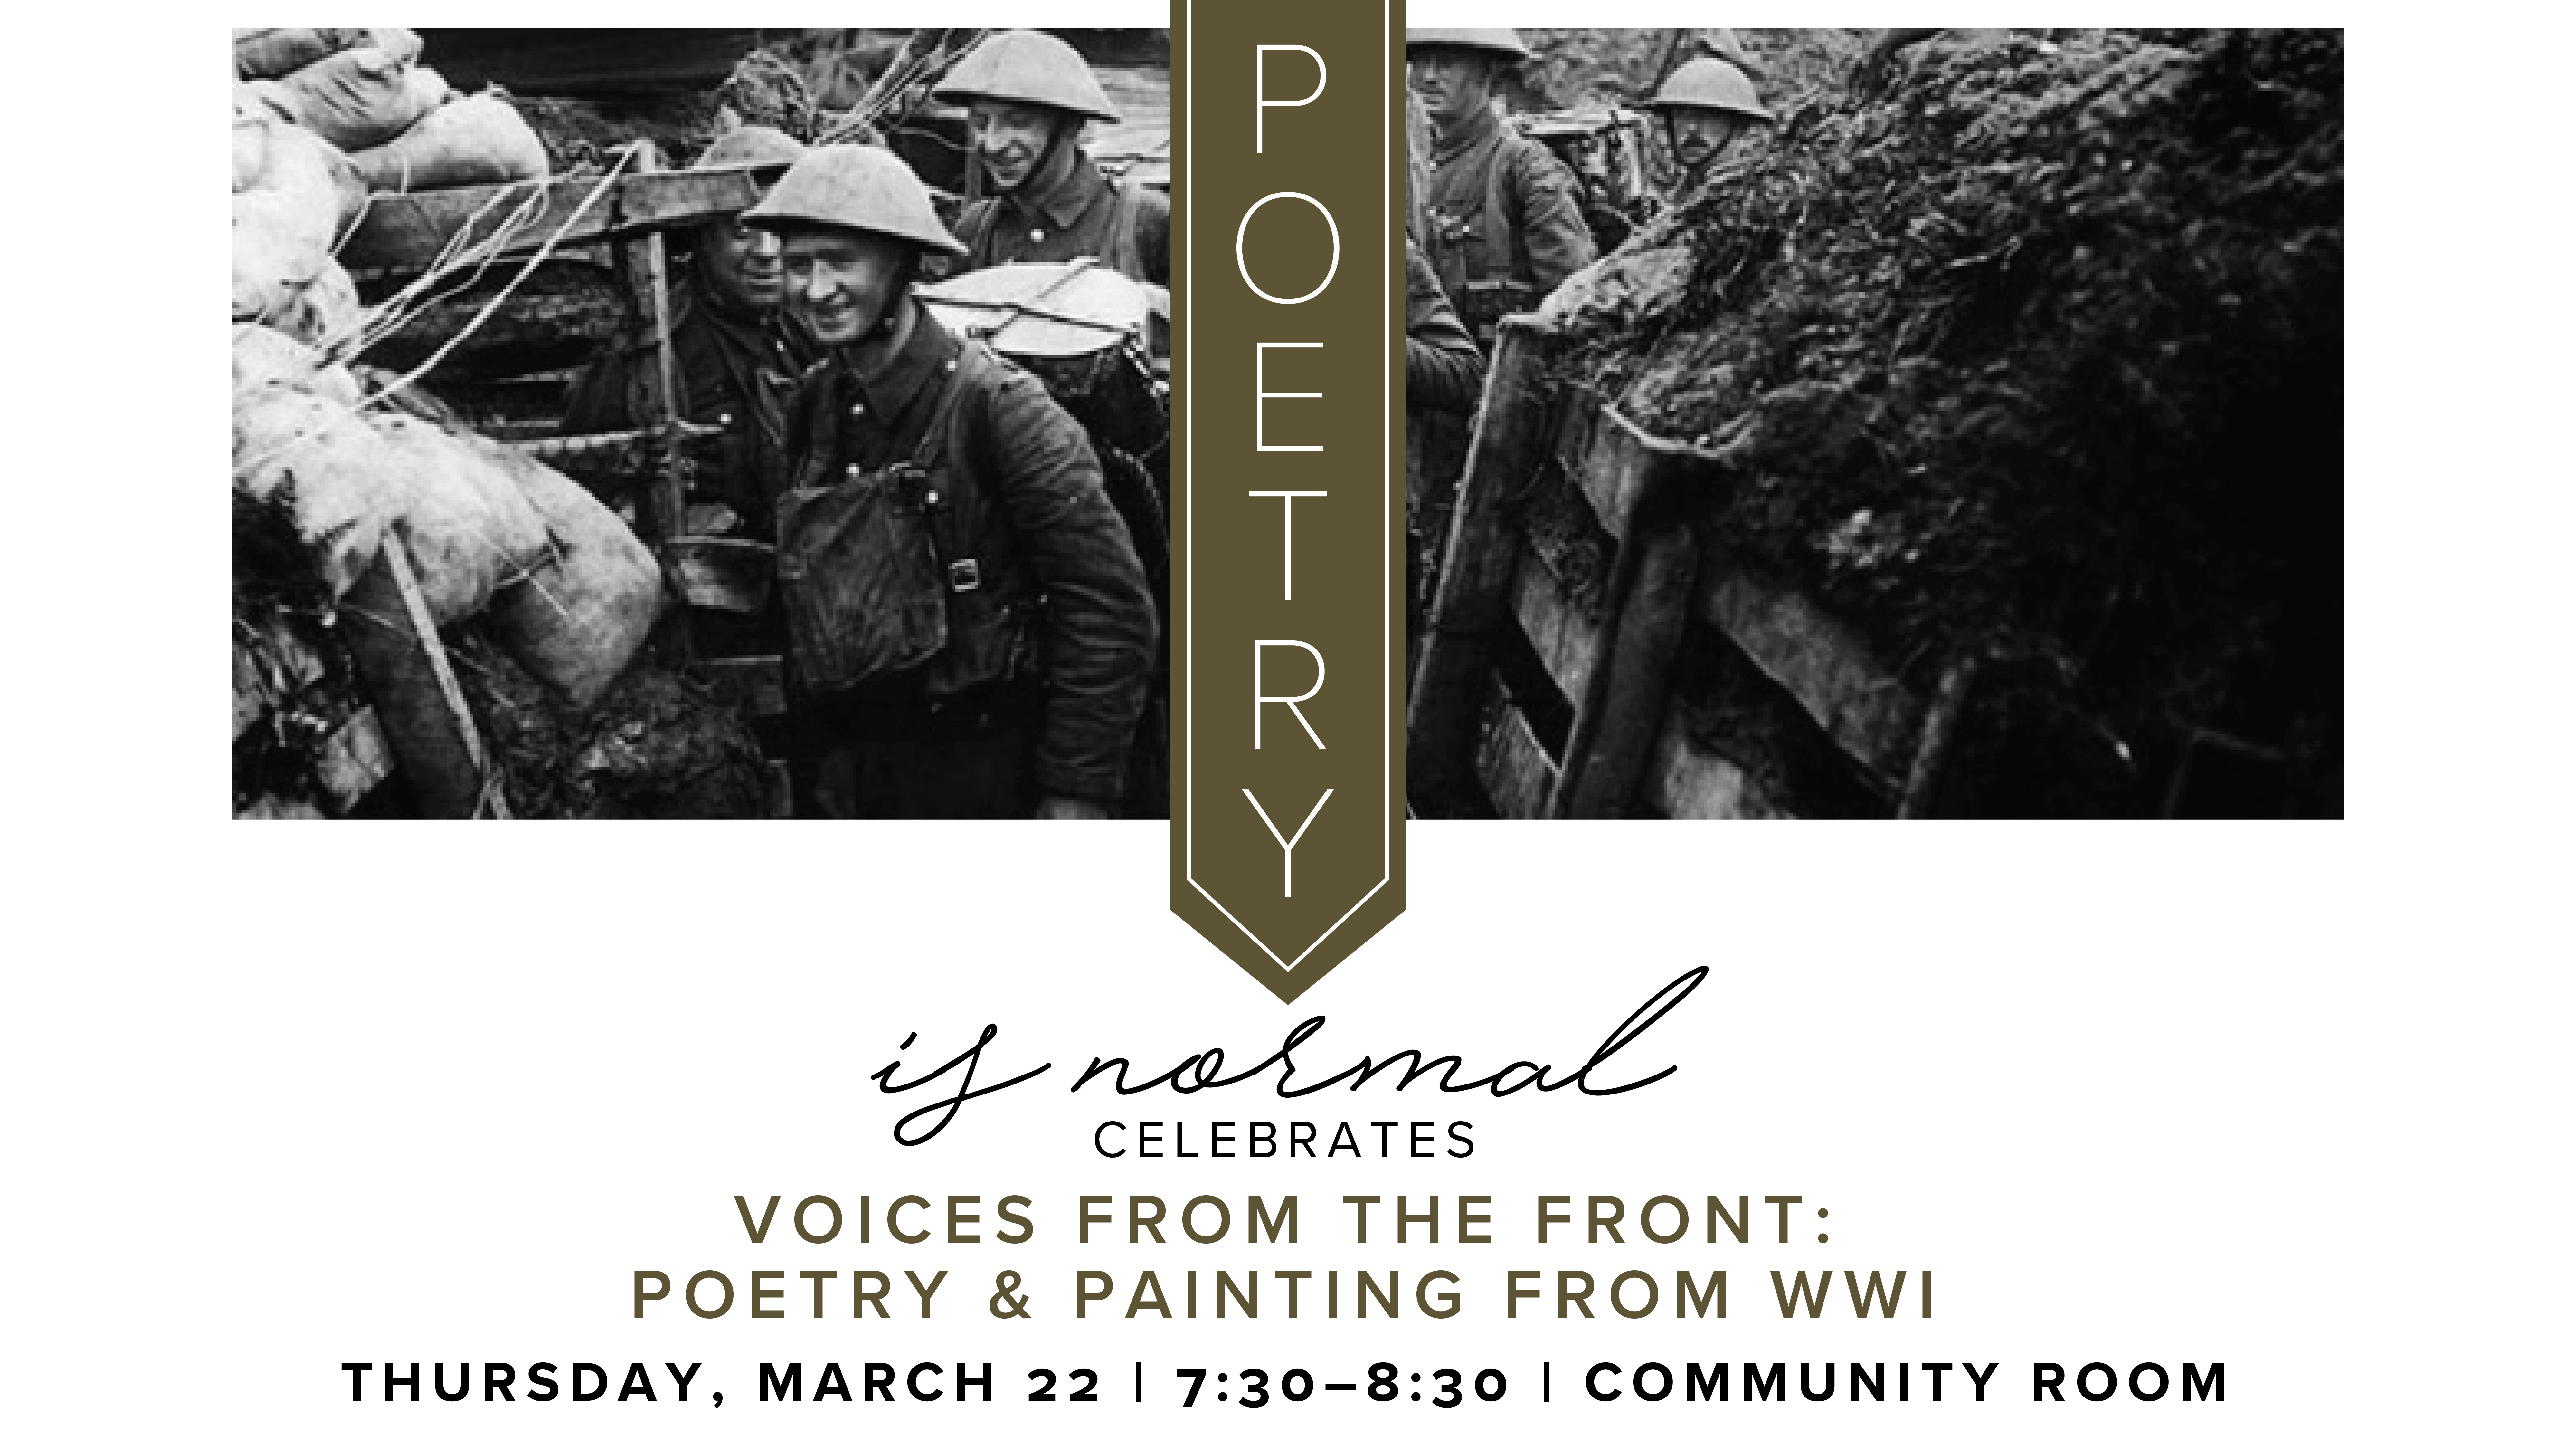 Poetry is Normal Presents: Voices from the Front